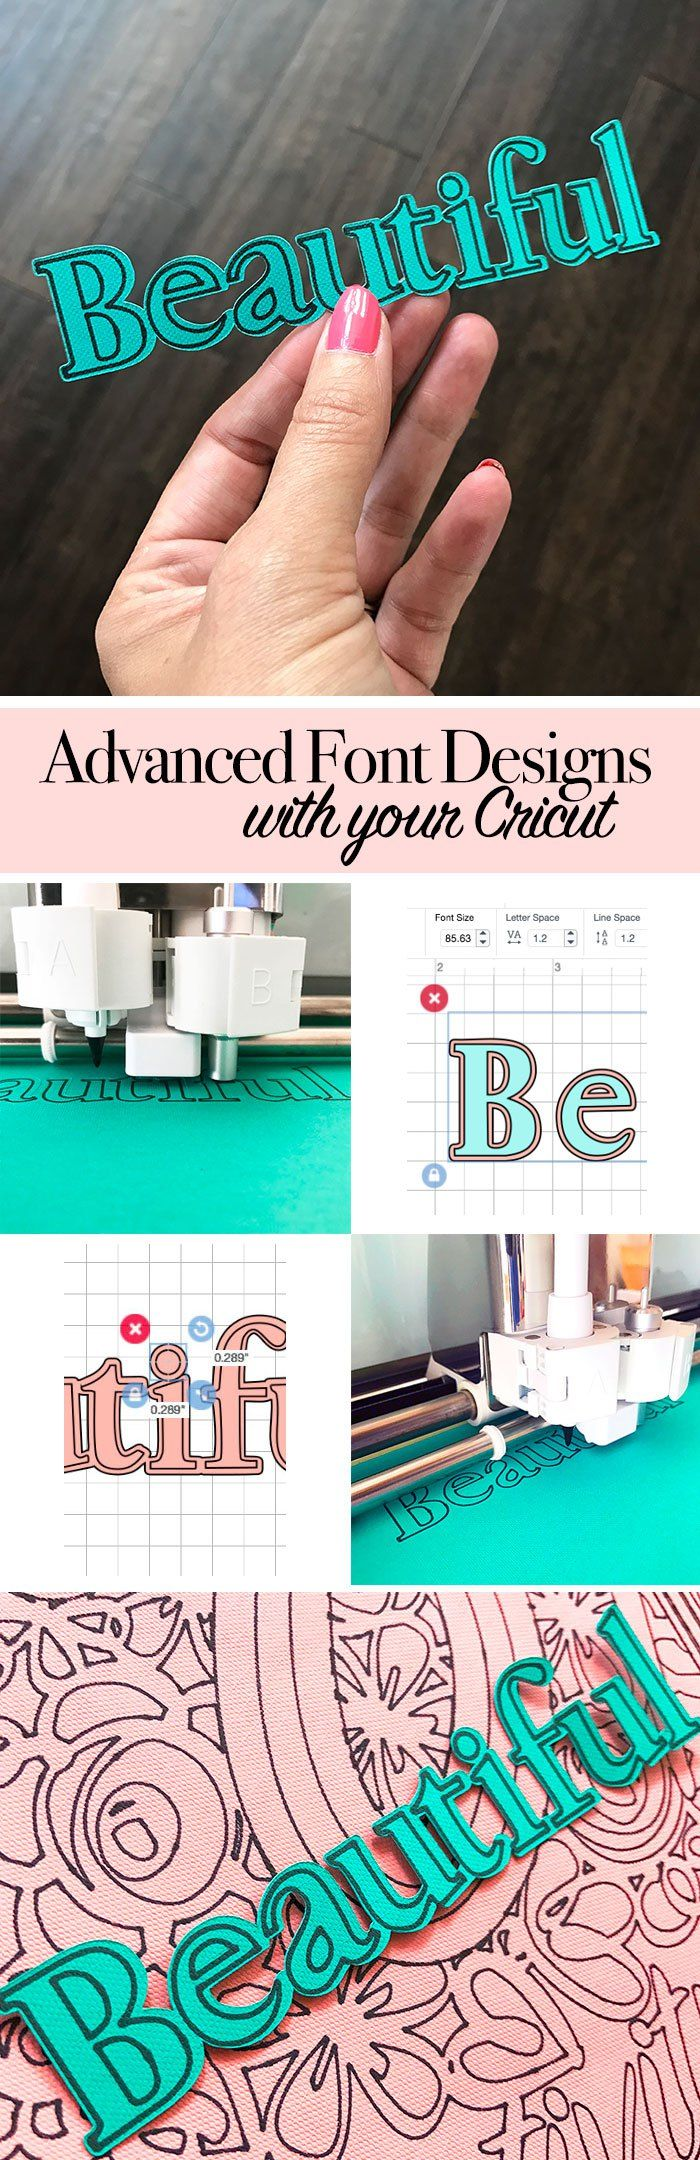 Make advanced font designs with your Cricut - #4 in the Drawing and Writing series by Jen Goode